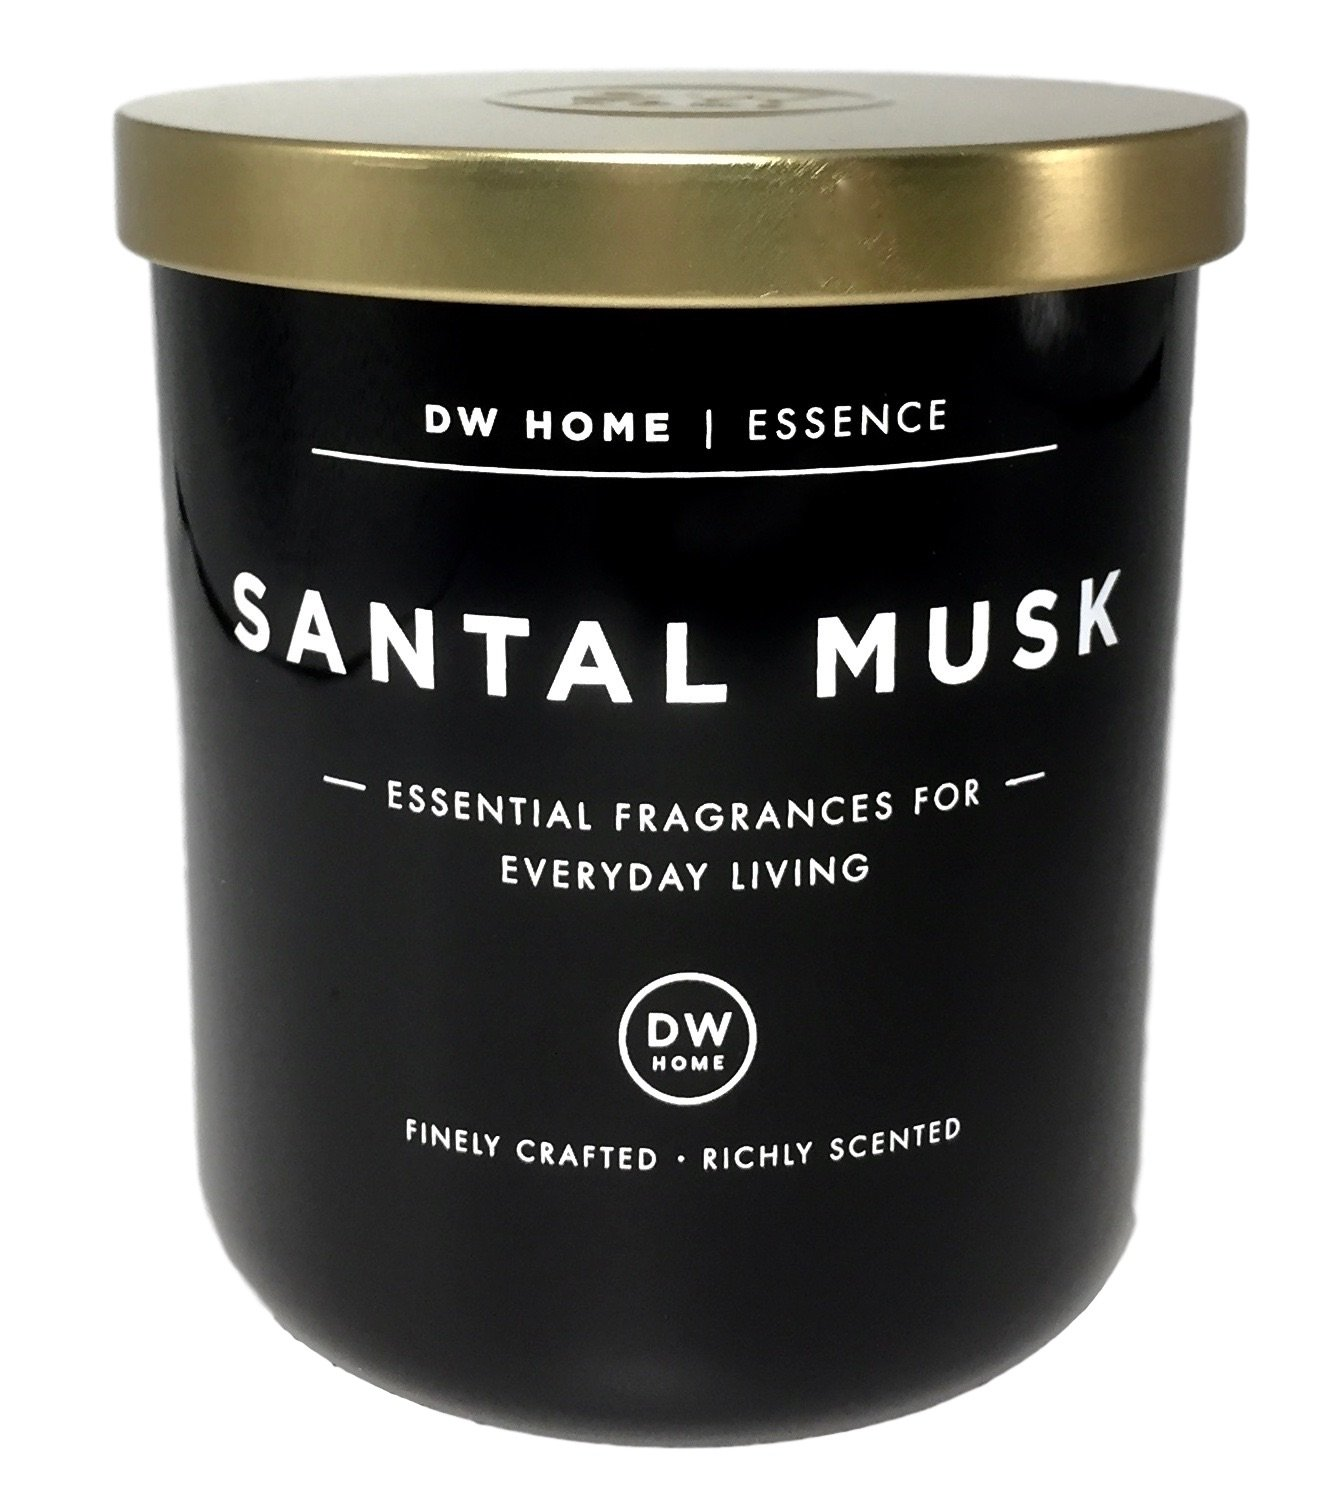 Dw Home Santal Musk Scented Soy Wax Blend Candle Essential Fragrances For Everyday Living 9OZ